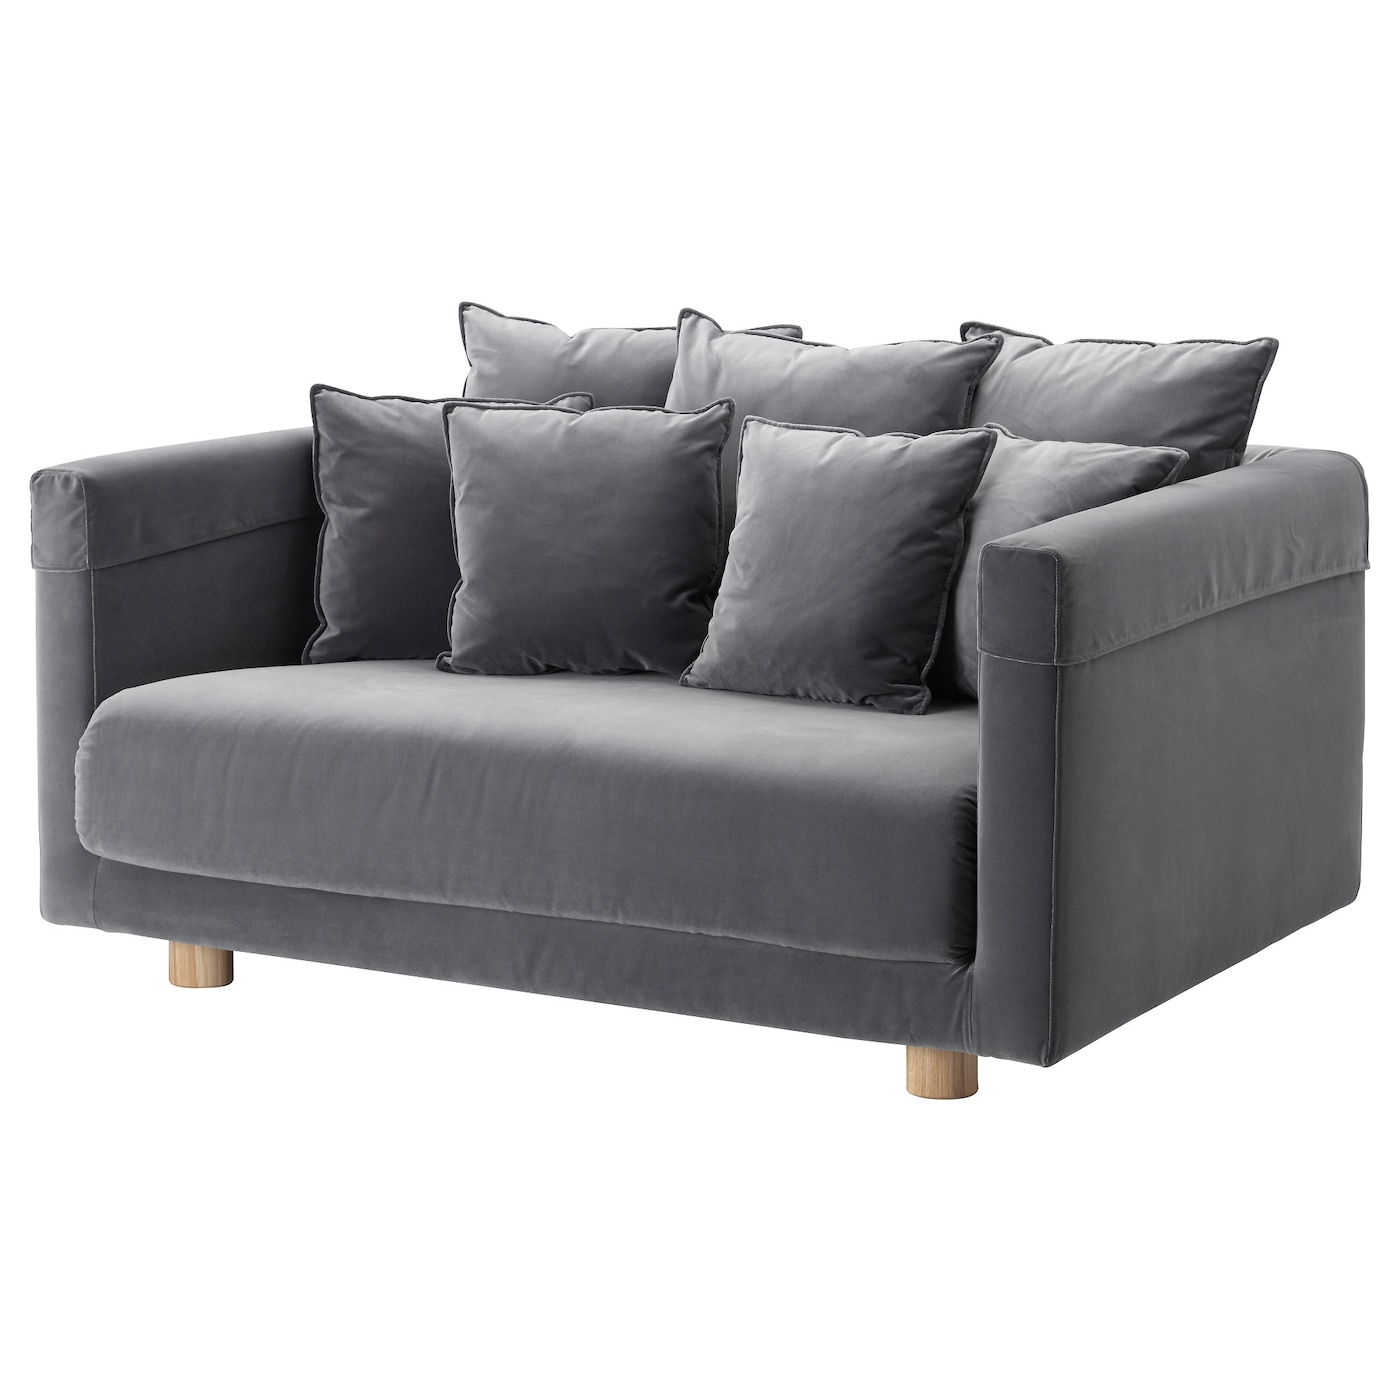 Stockholm 2017 two seat sofa sandbacka dark grey ikea for Stockholm sofa ikea